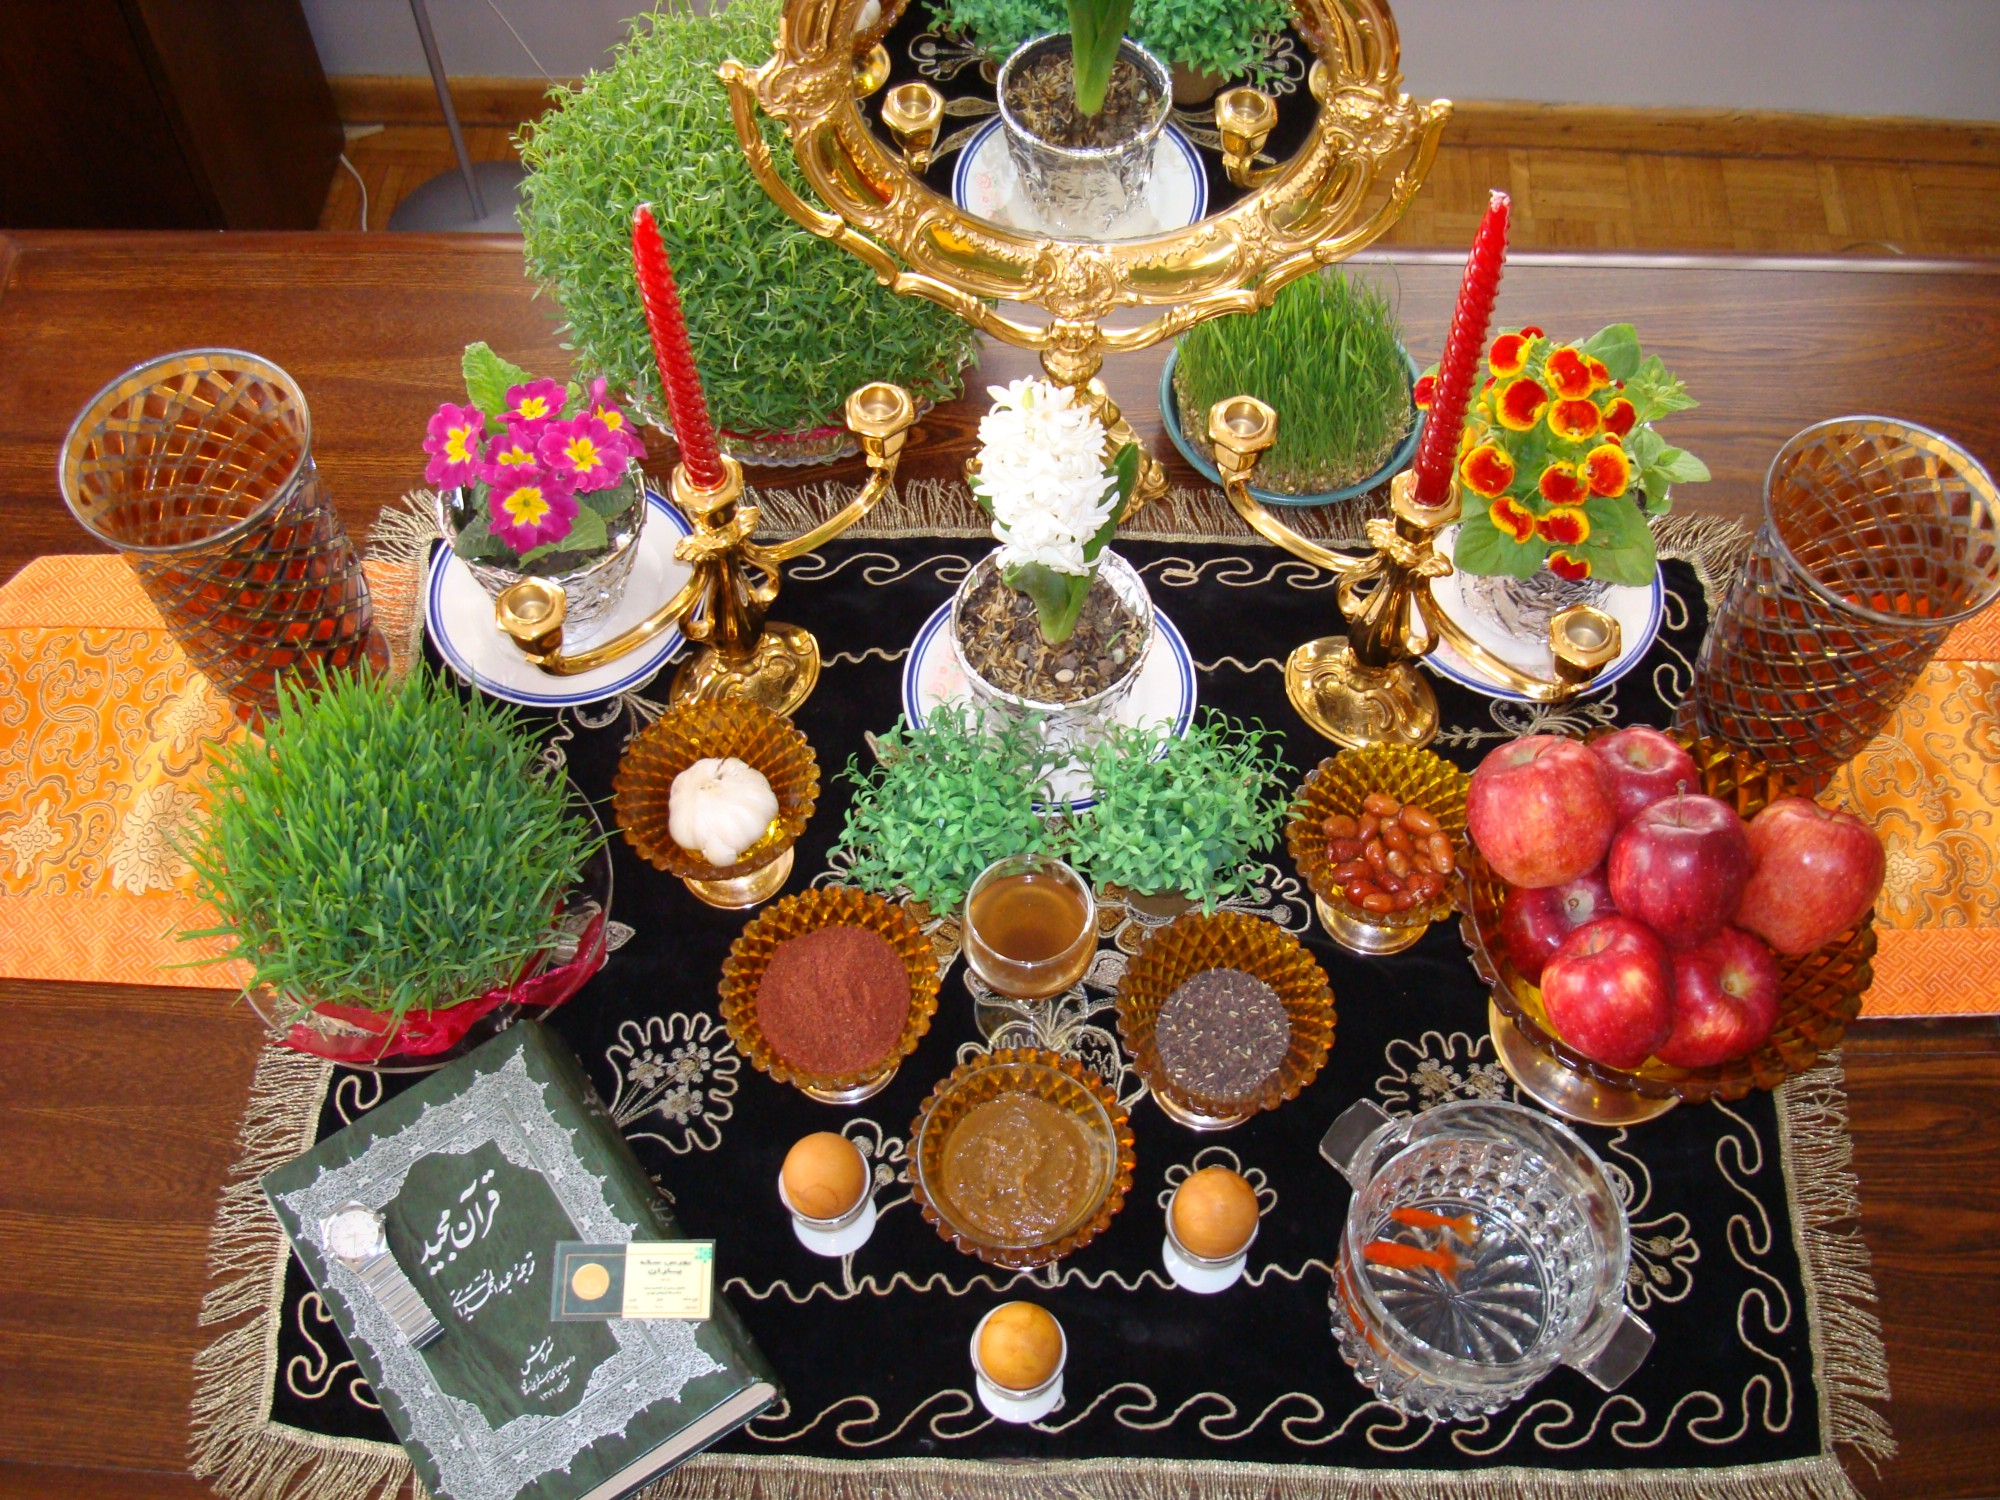 Persian New Year is around the corner! – Sina Meraji – Medium